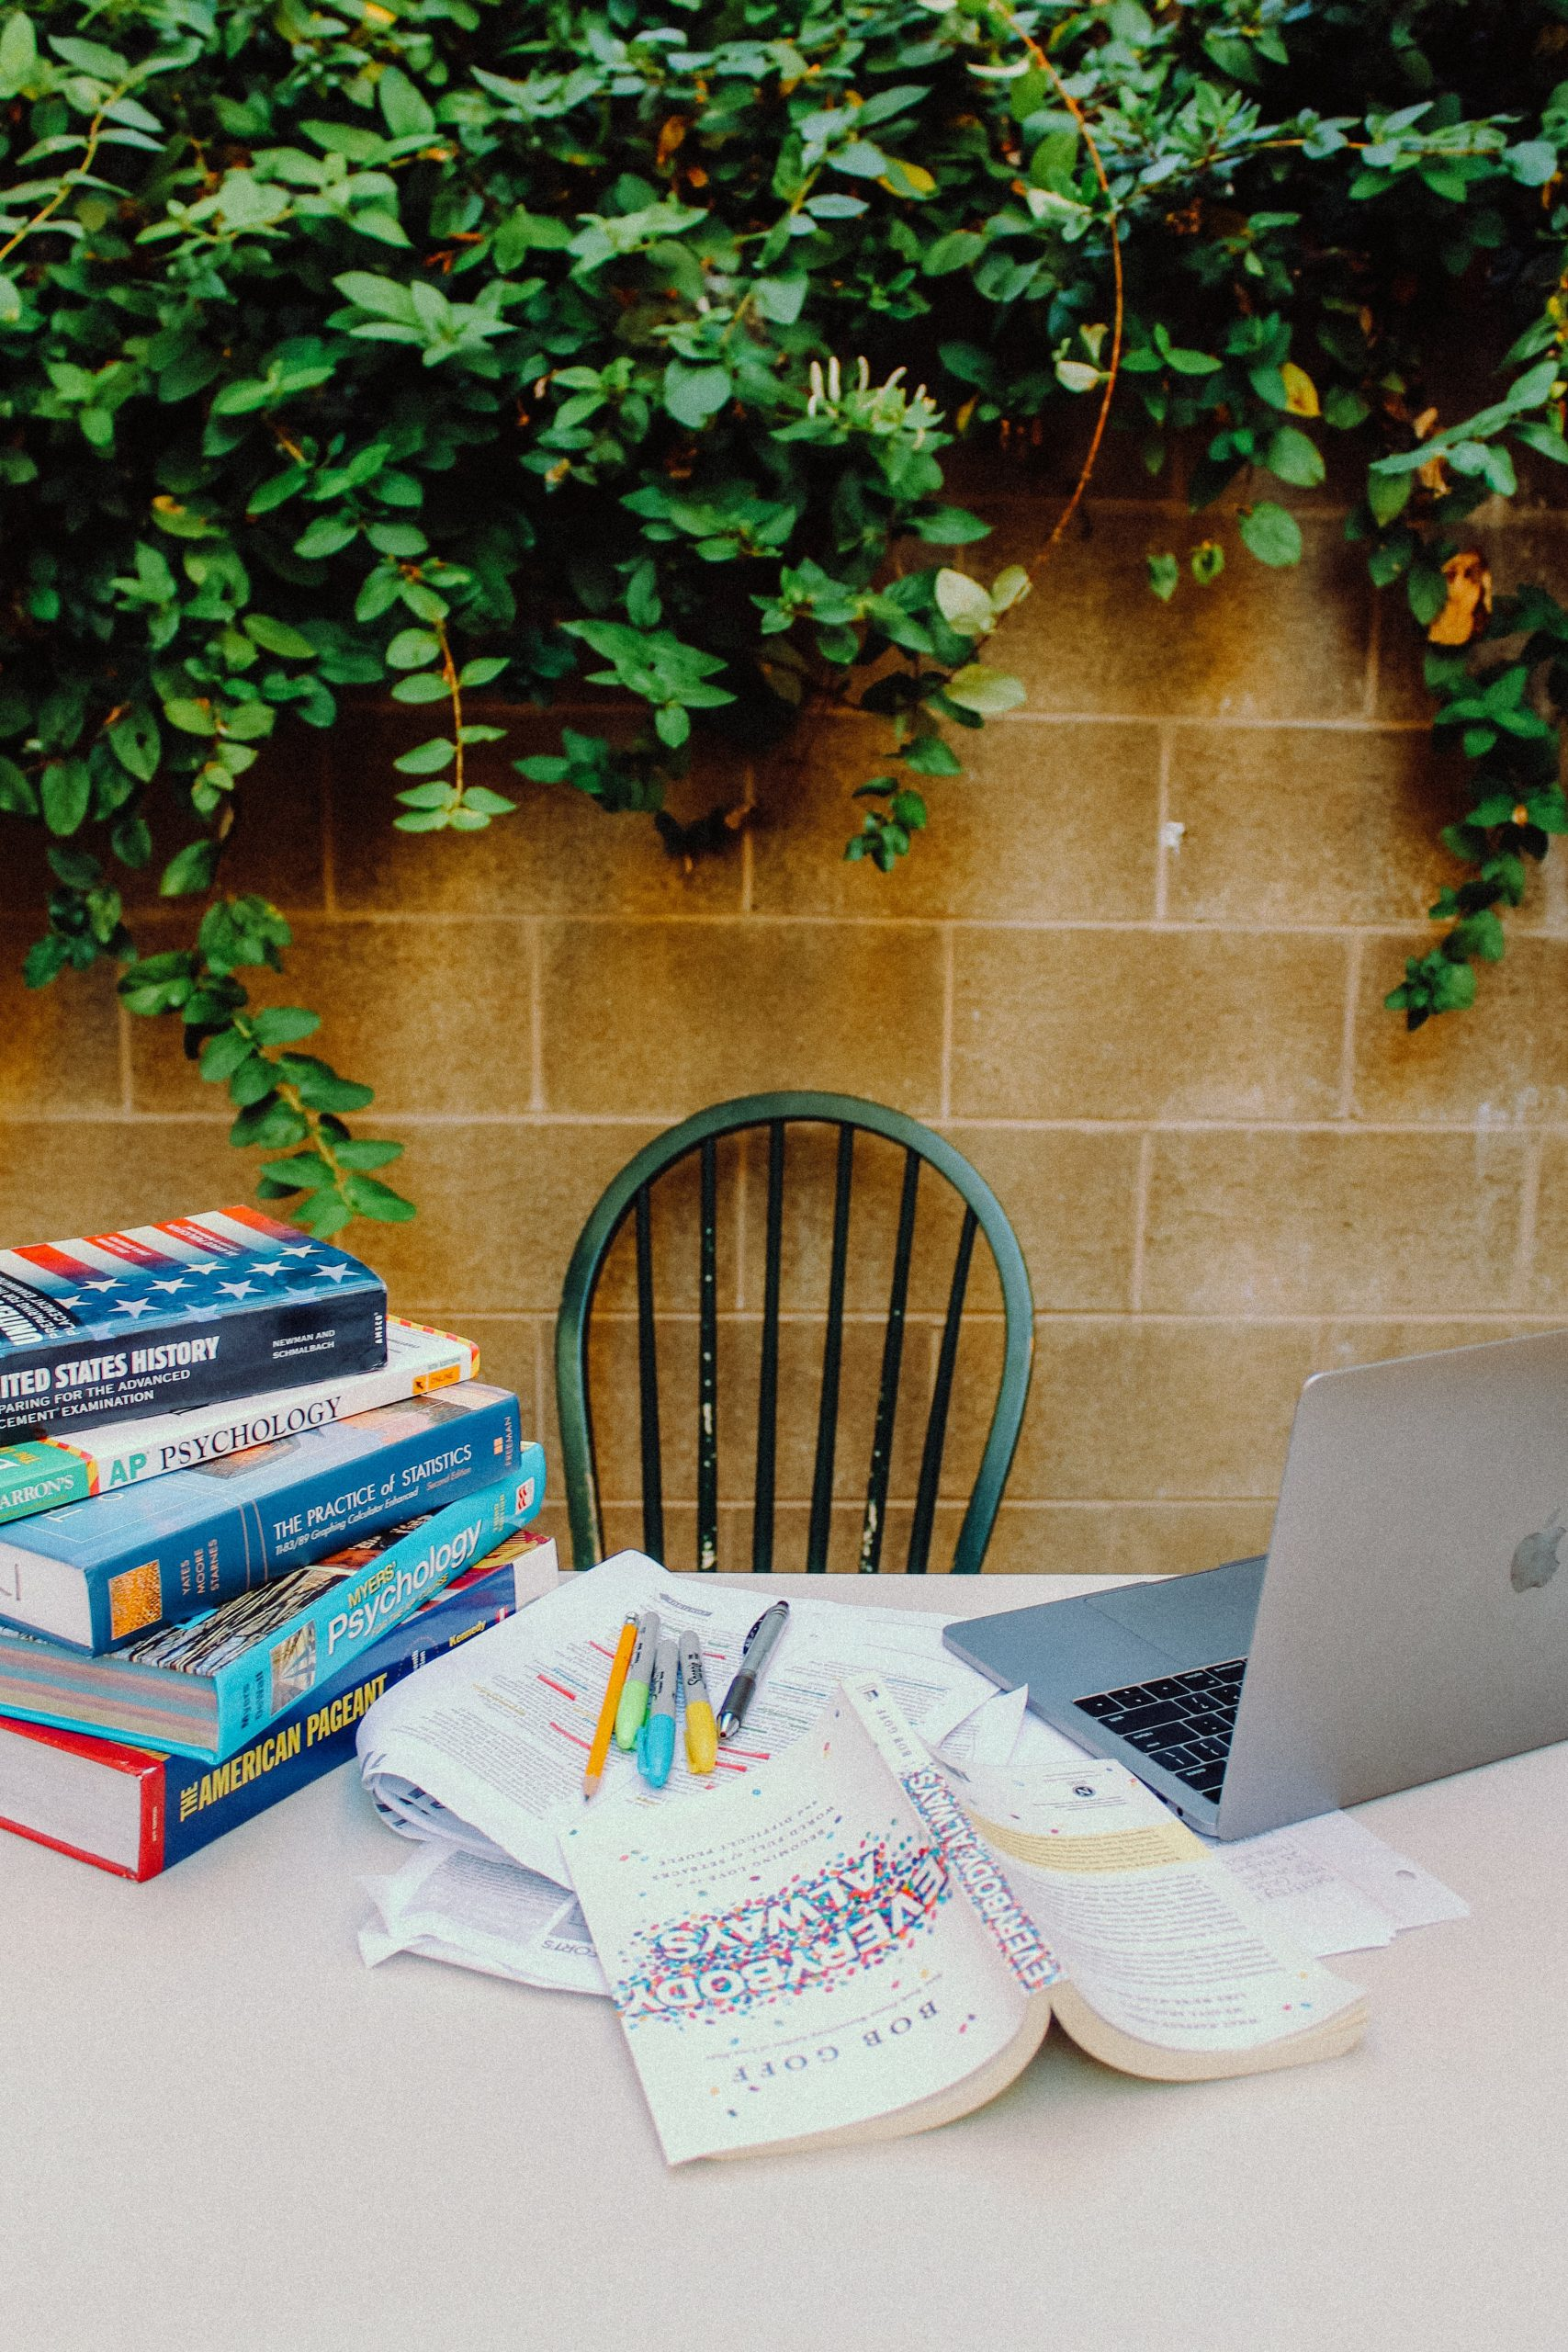 How to find inspiration for writing a research paper